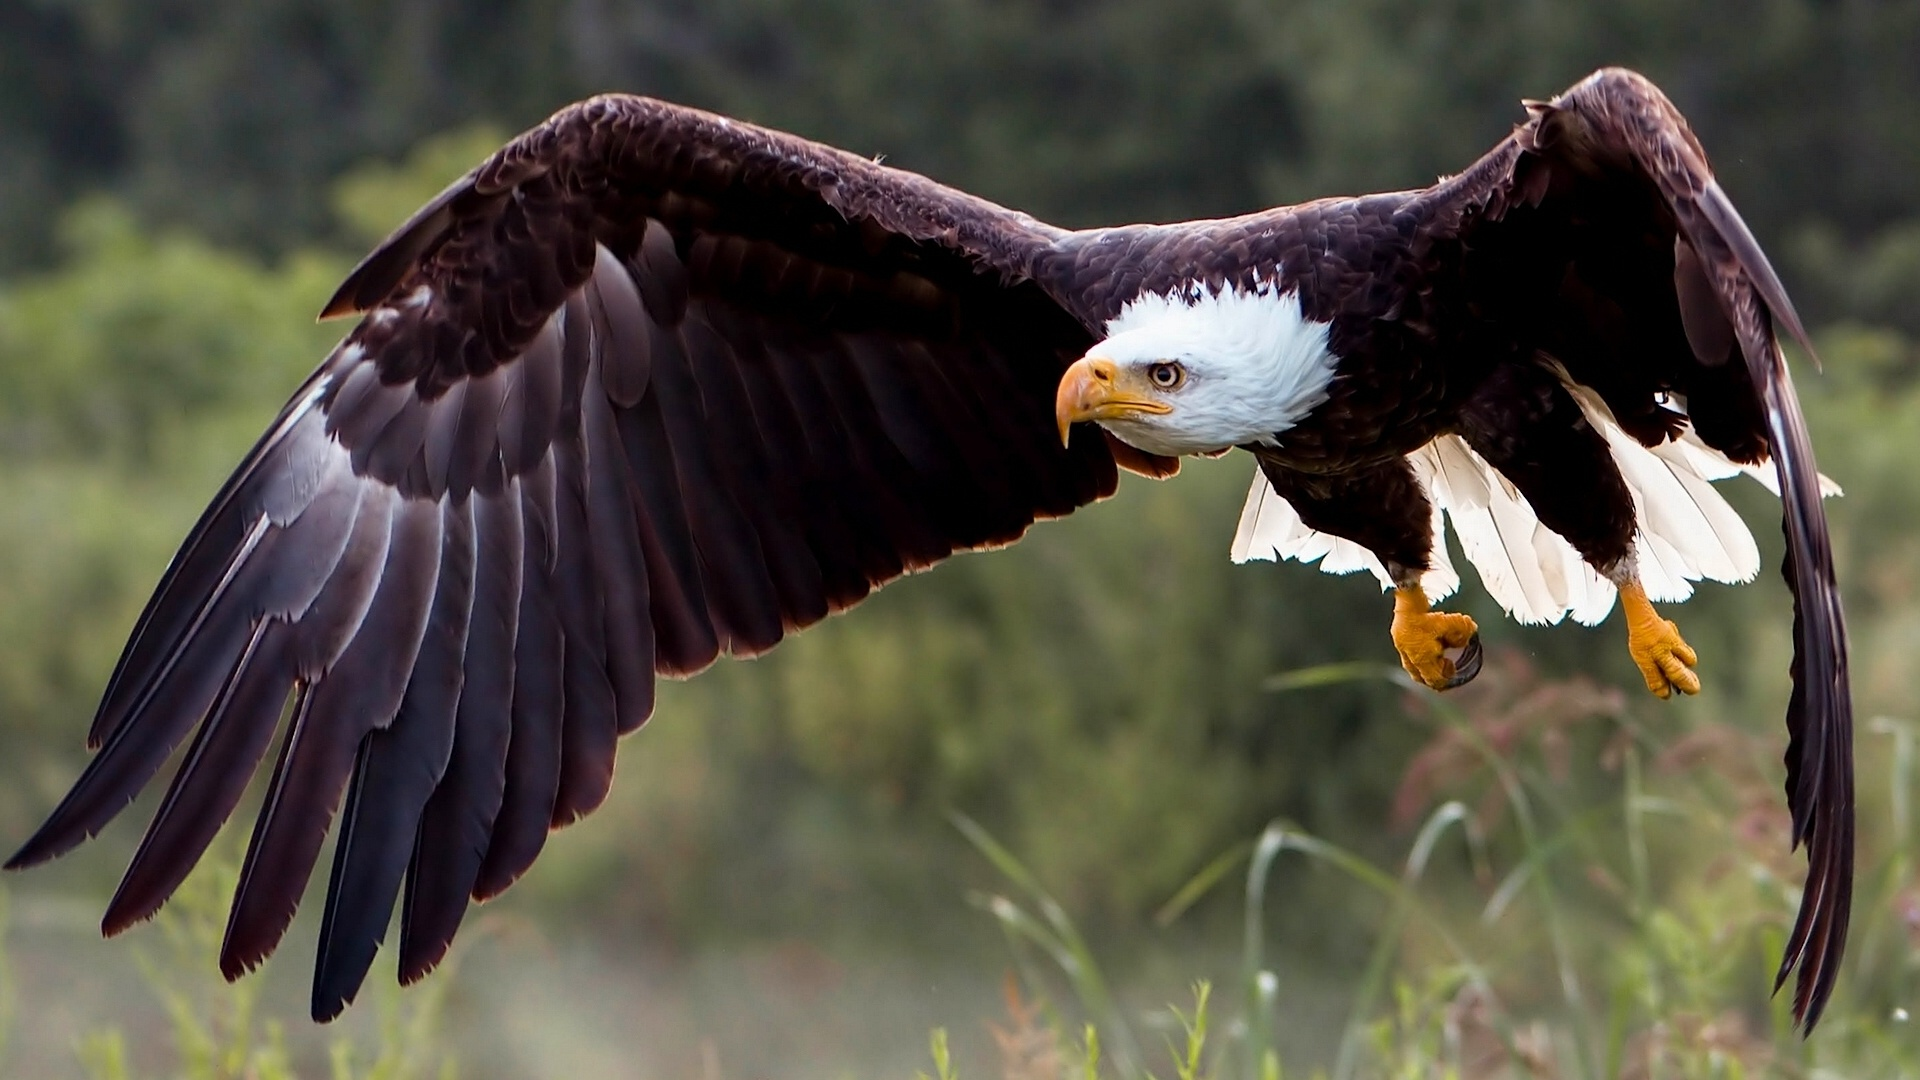 Wallpaper Bald Eagle bird Hawk Animals 1920x1080 Birds animal